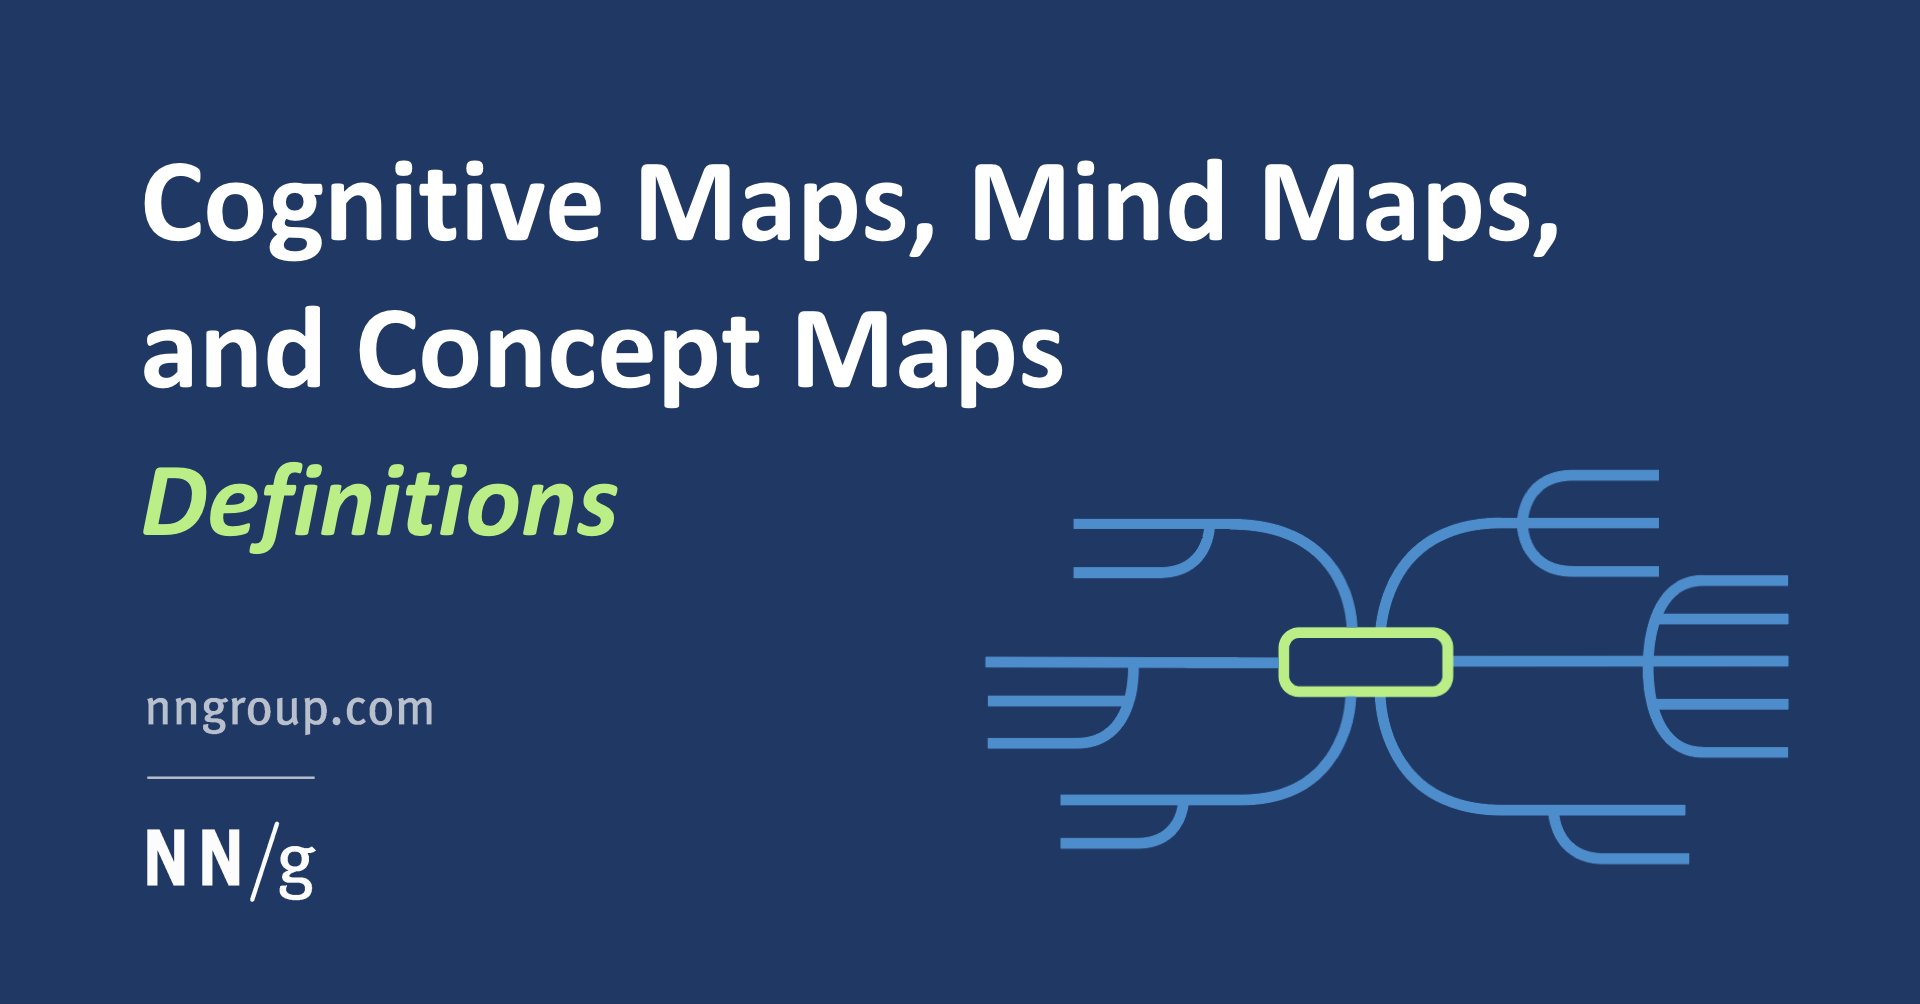 Cognitive Maps, Mind Maps, and Concept Maps: Definitions